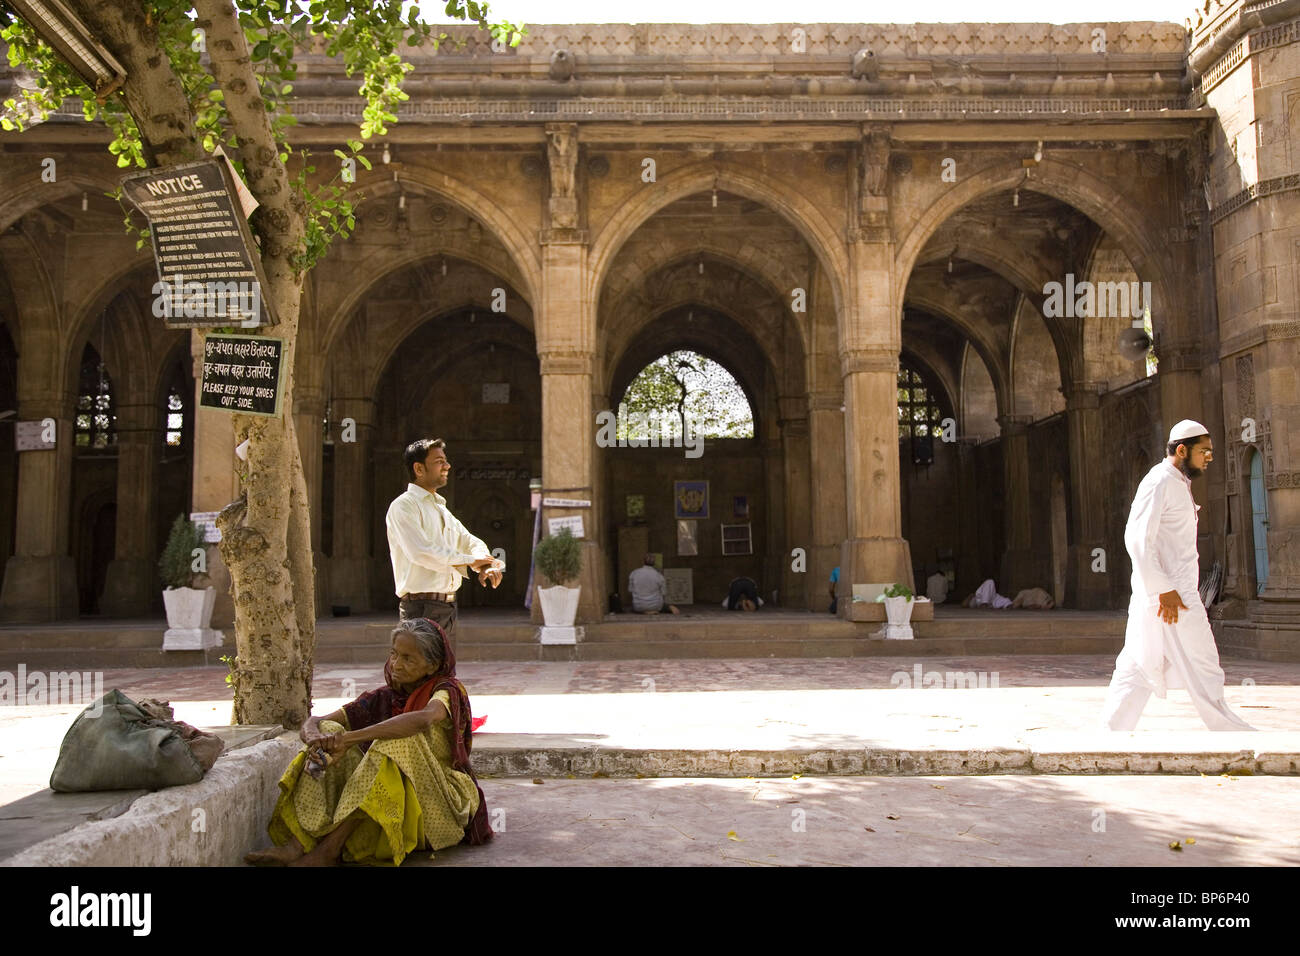 Daily life around the courtyard of the Sidi Saiyyed Mosque in Ahmedabad, Gujarat, India. - Stock Image